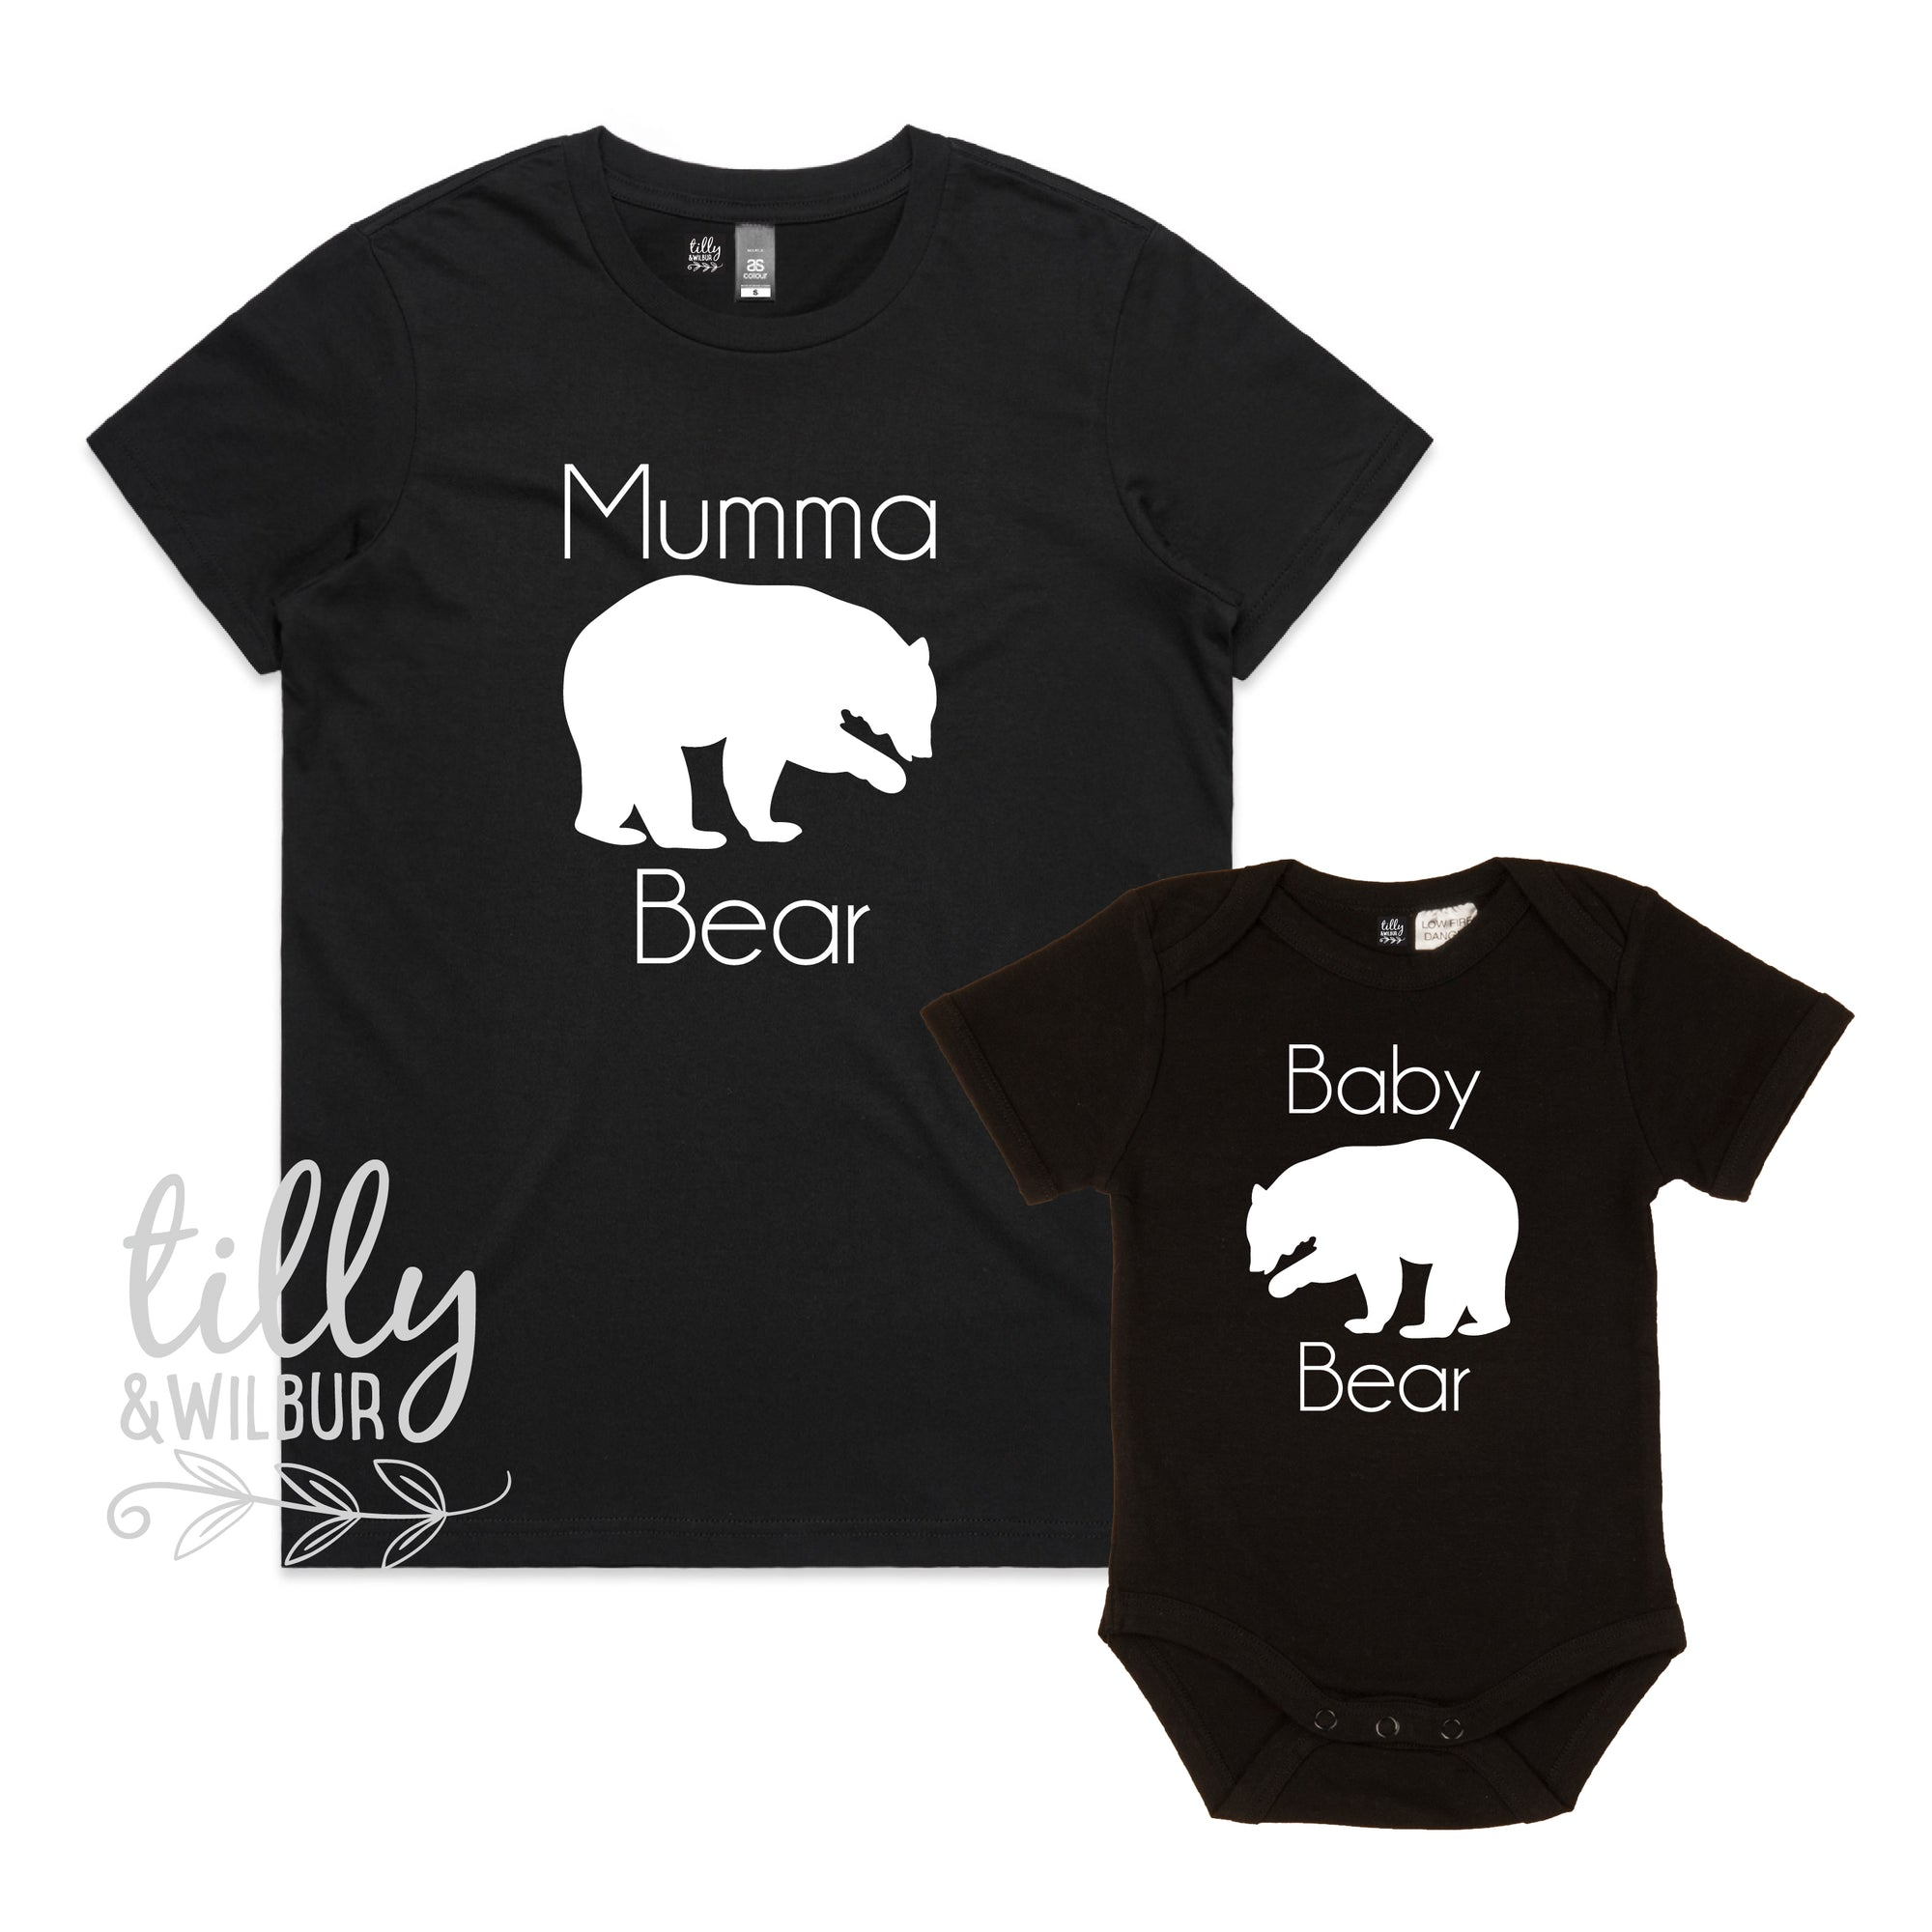 Mumma Bear and Baby Bear Set